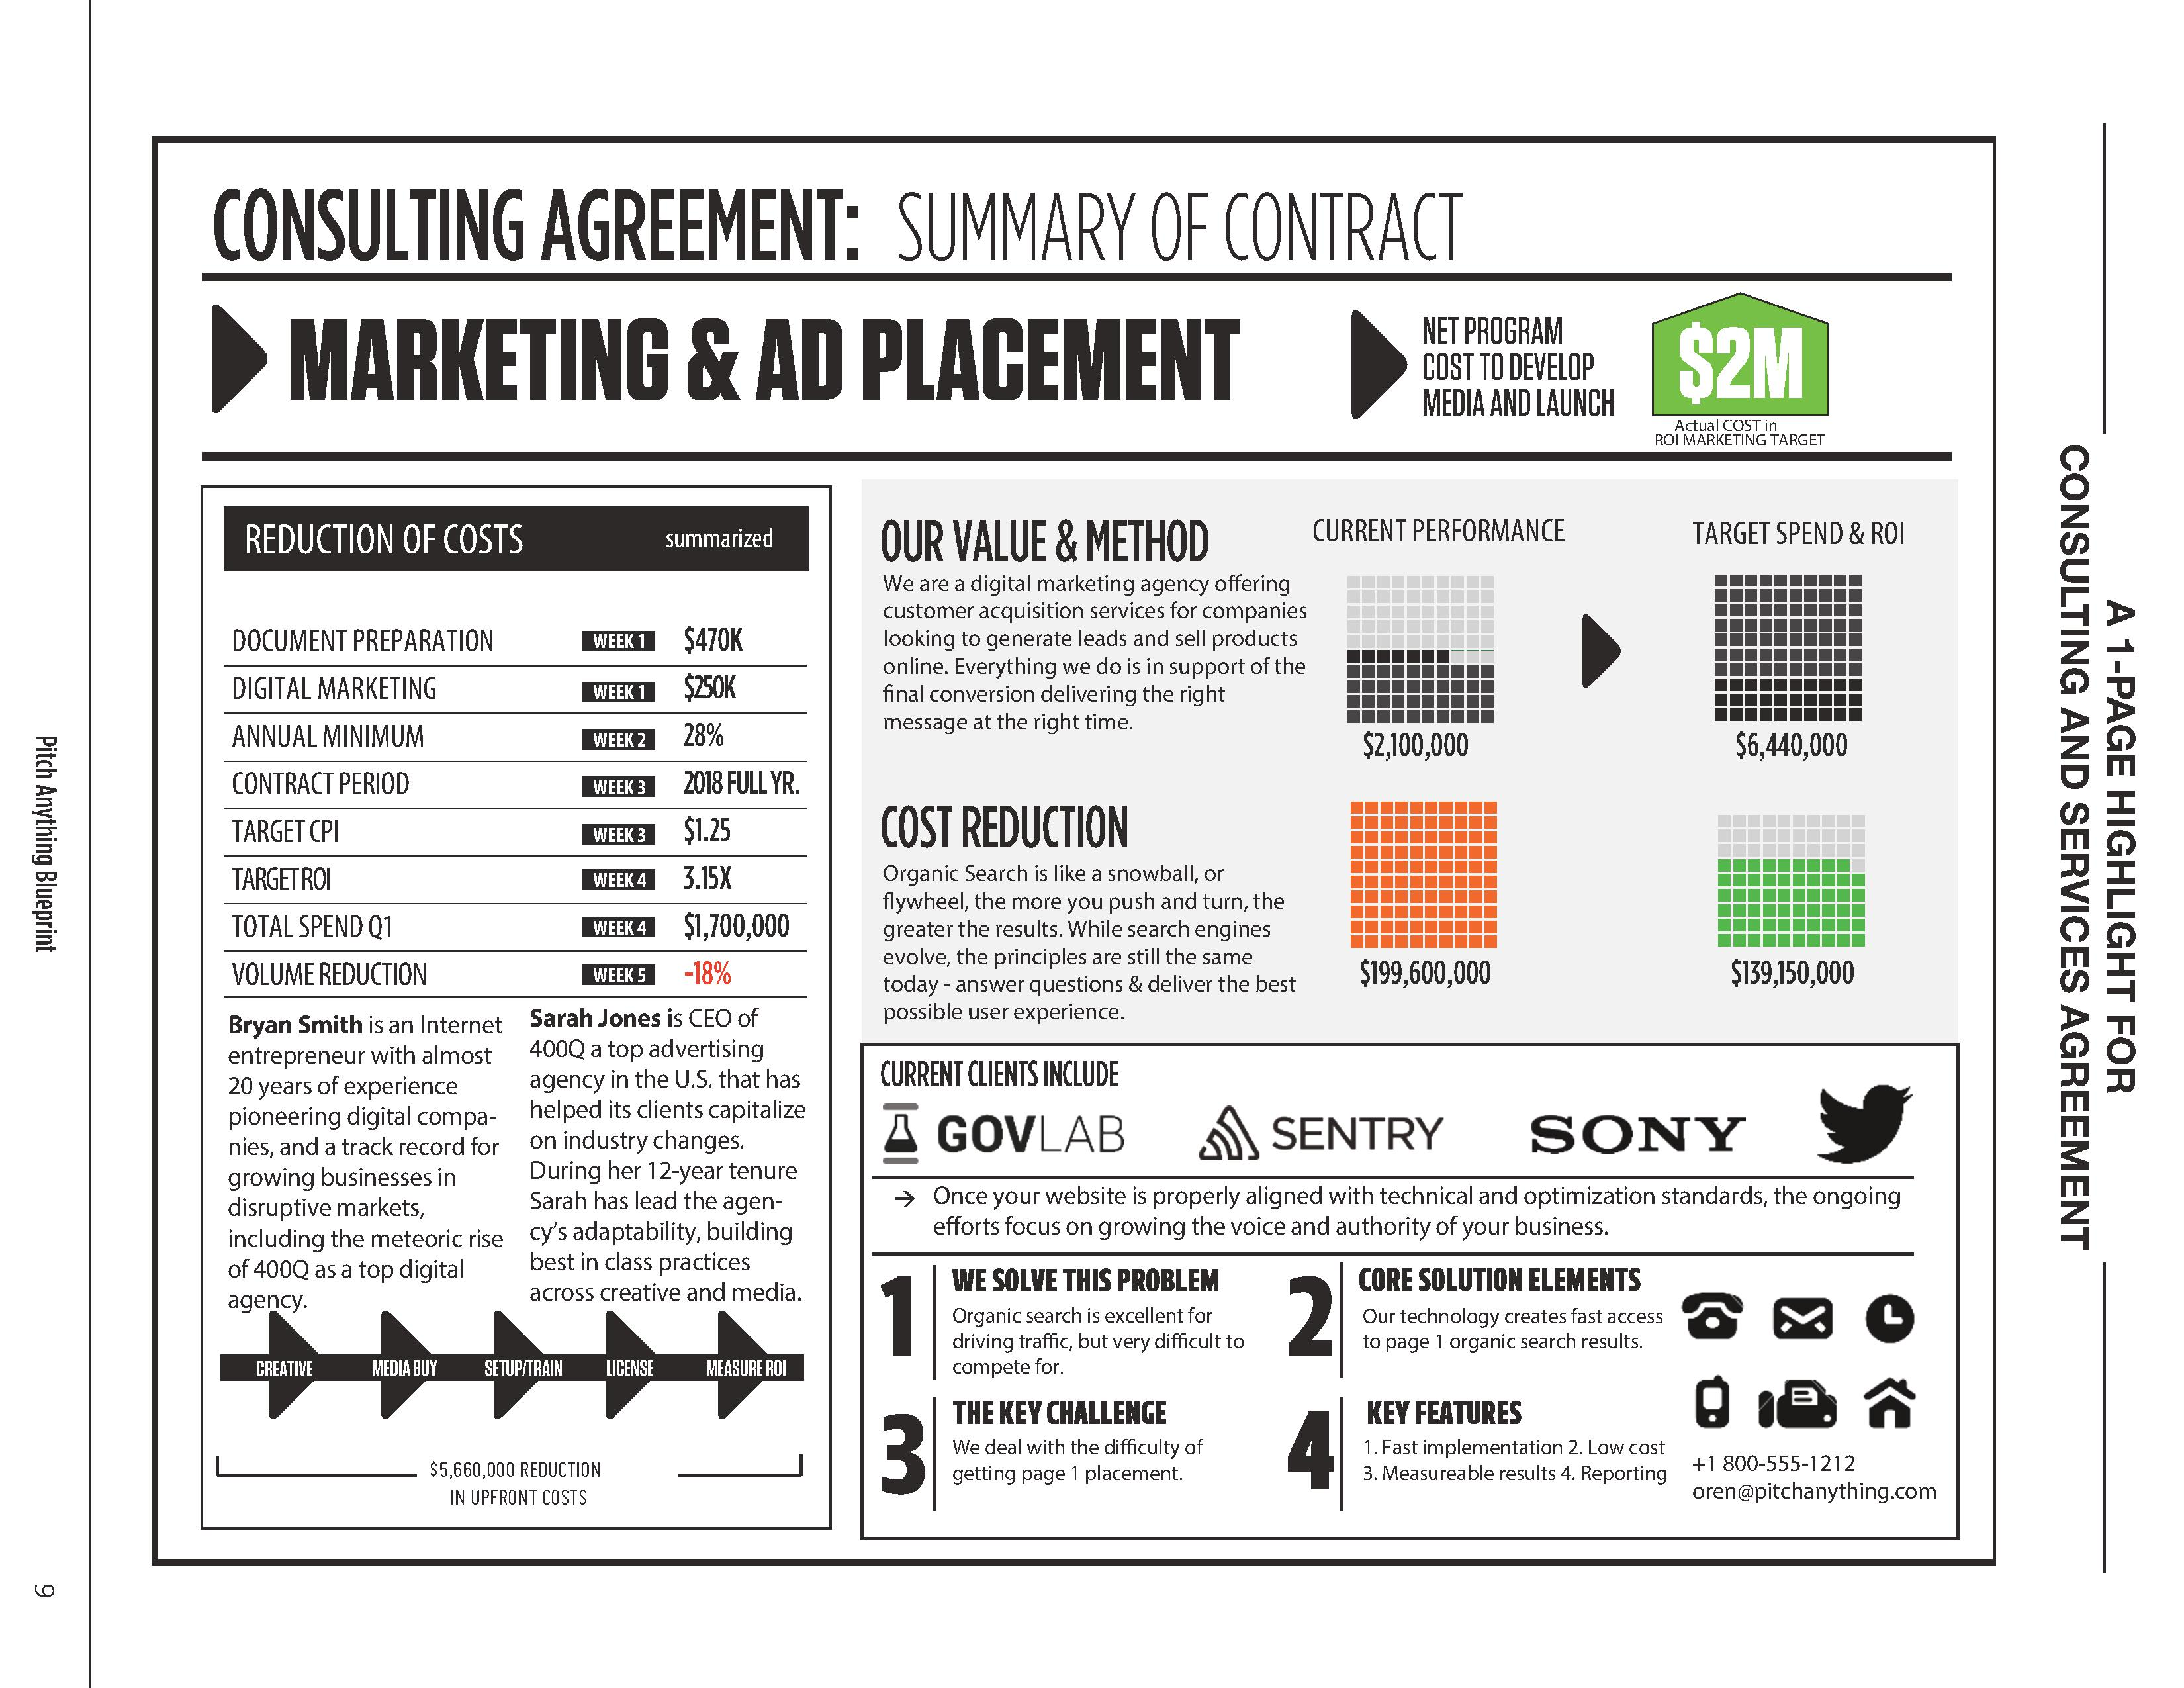 Consulting Agreement Summary Of Contract Net Program Marketing Ad Placement Cost To Develop 2m Media And Launch Actual In Roi Target